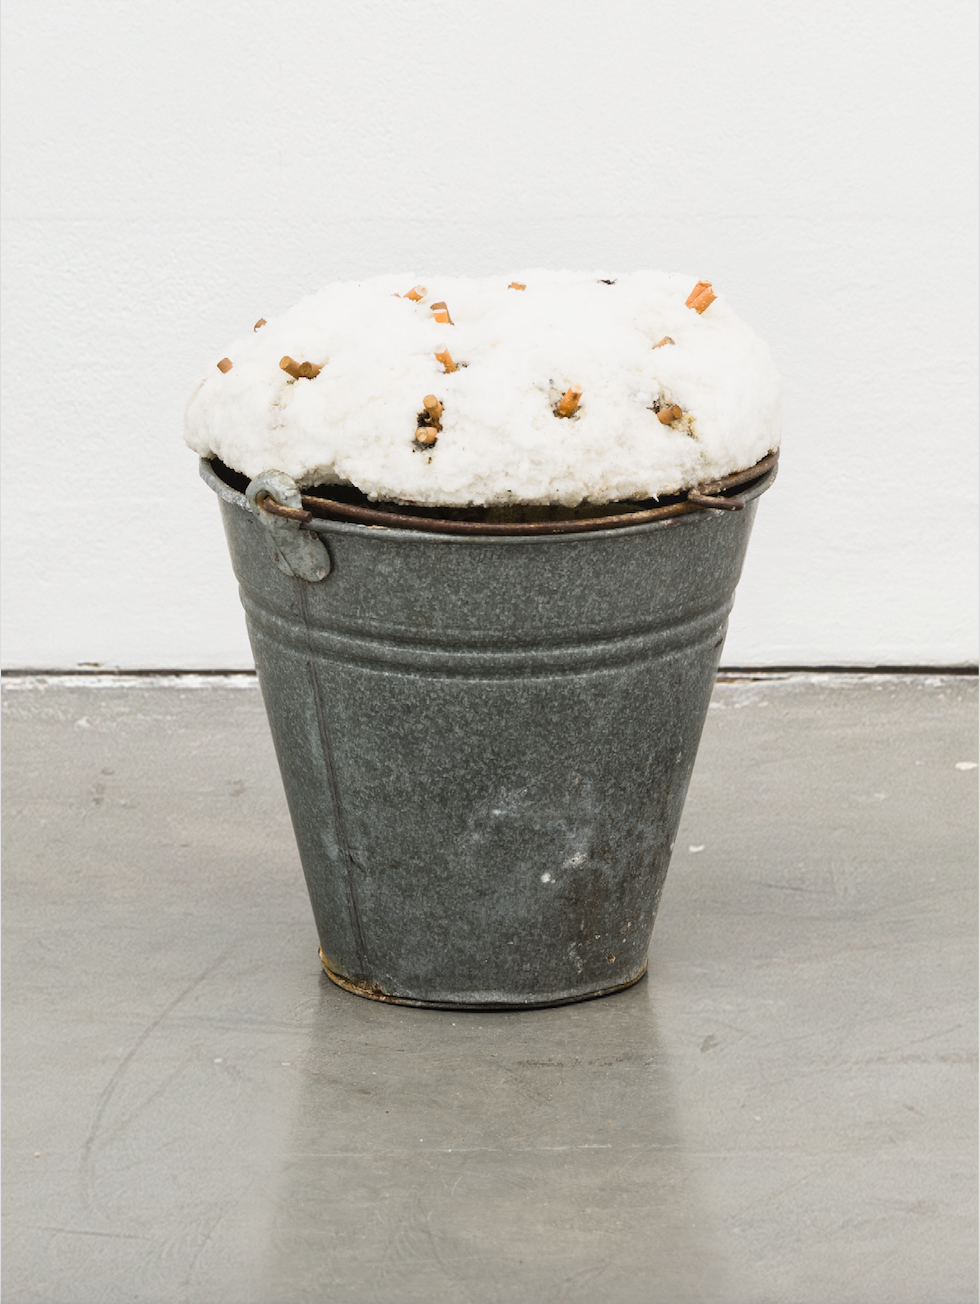 IN REAL LIFE curated by_Luca Lo Pinto, MARIE MUL, Cigarette Hedgehog, 2012, Aluminium Eimer, Polyurethanschaum, Acrylfarbe, Lack, Cellophan, Zigaretten, 27 x 40 x 30 cm, Photo: Galerie Christine König, Vienna, 2014 Courtesy: Marie Mul und Galerie Christine König